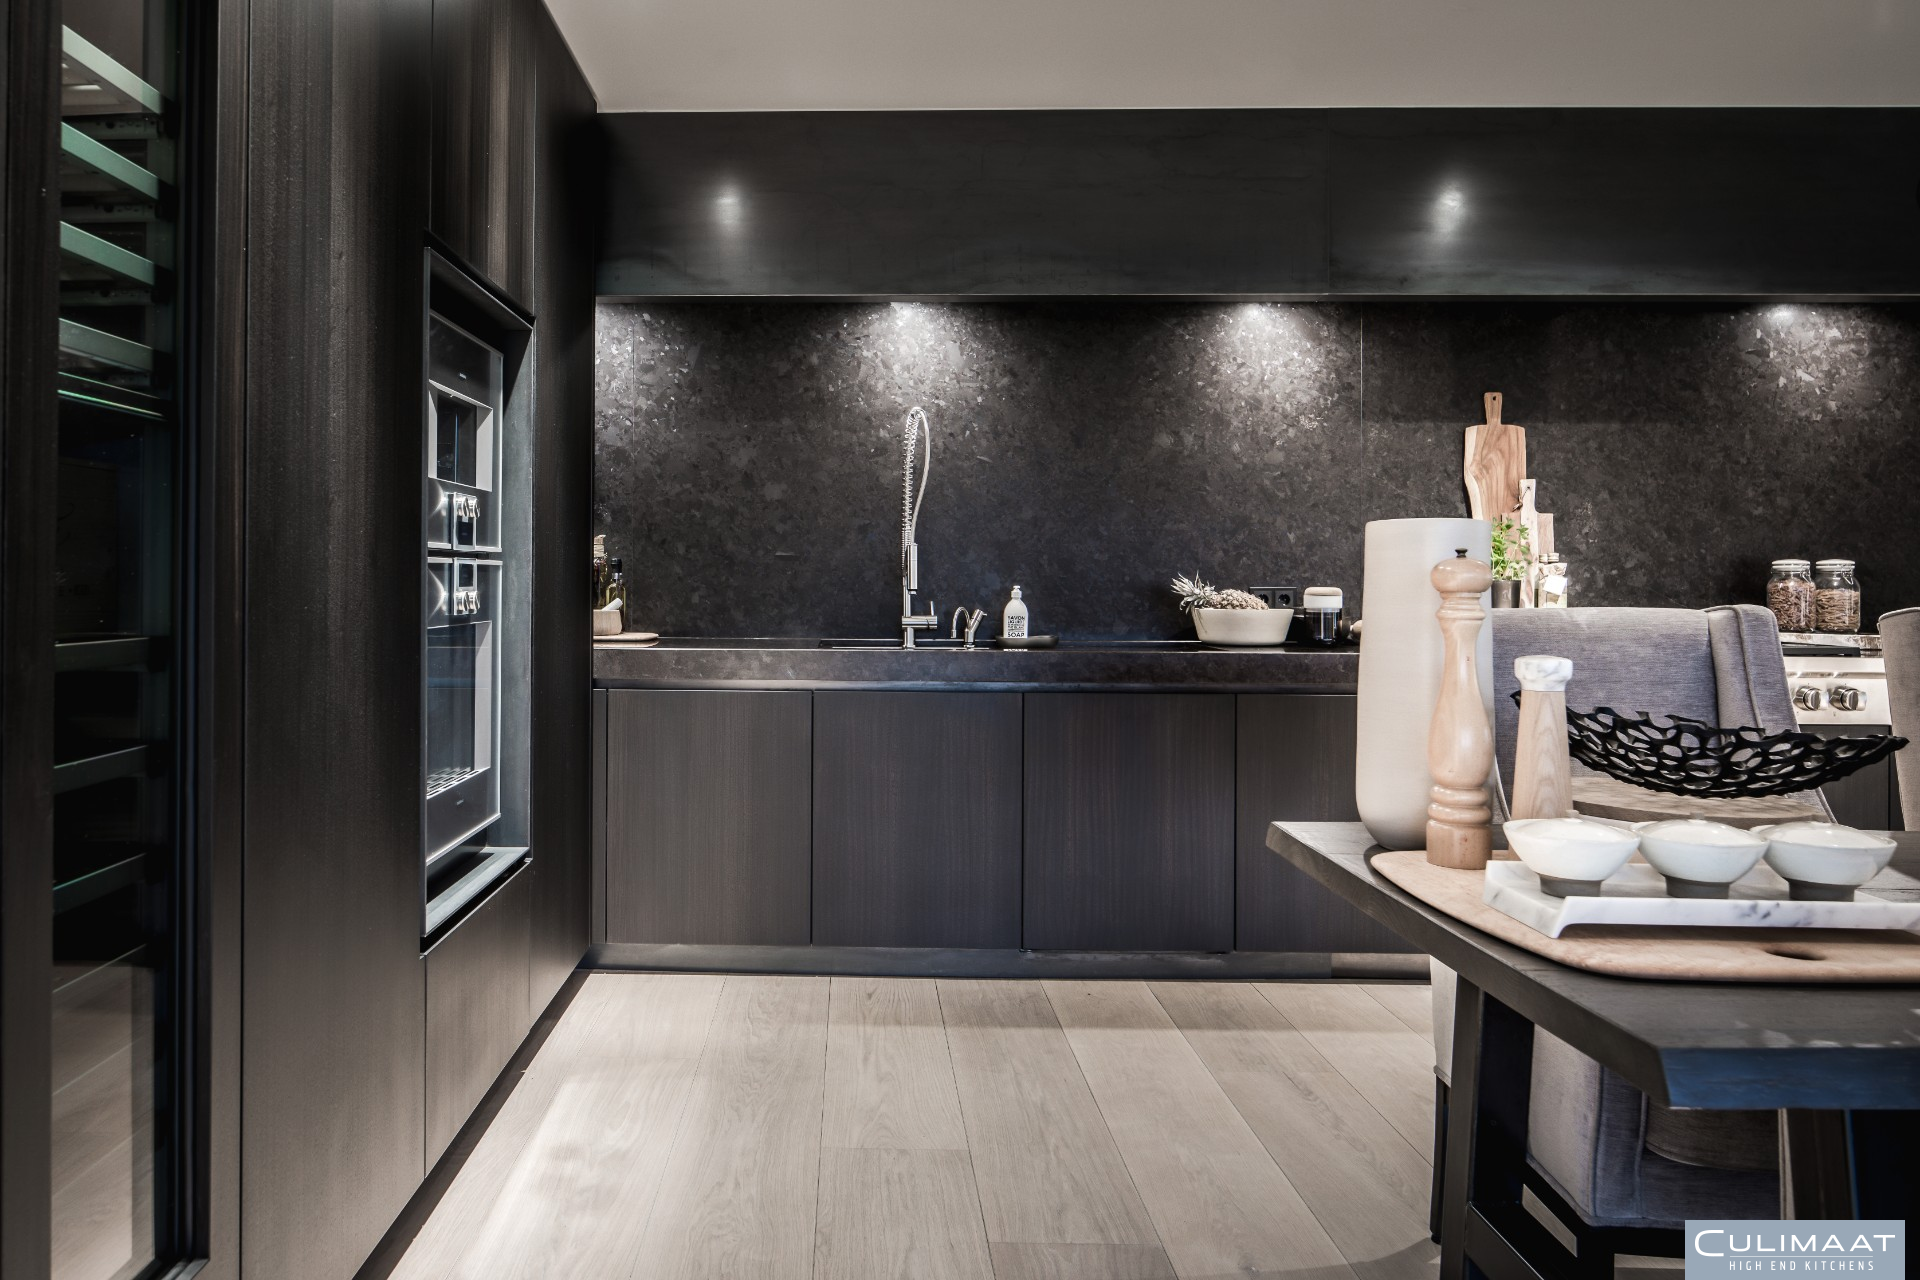 Joppe culimaat high end kitchens